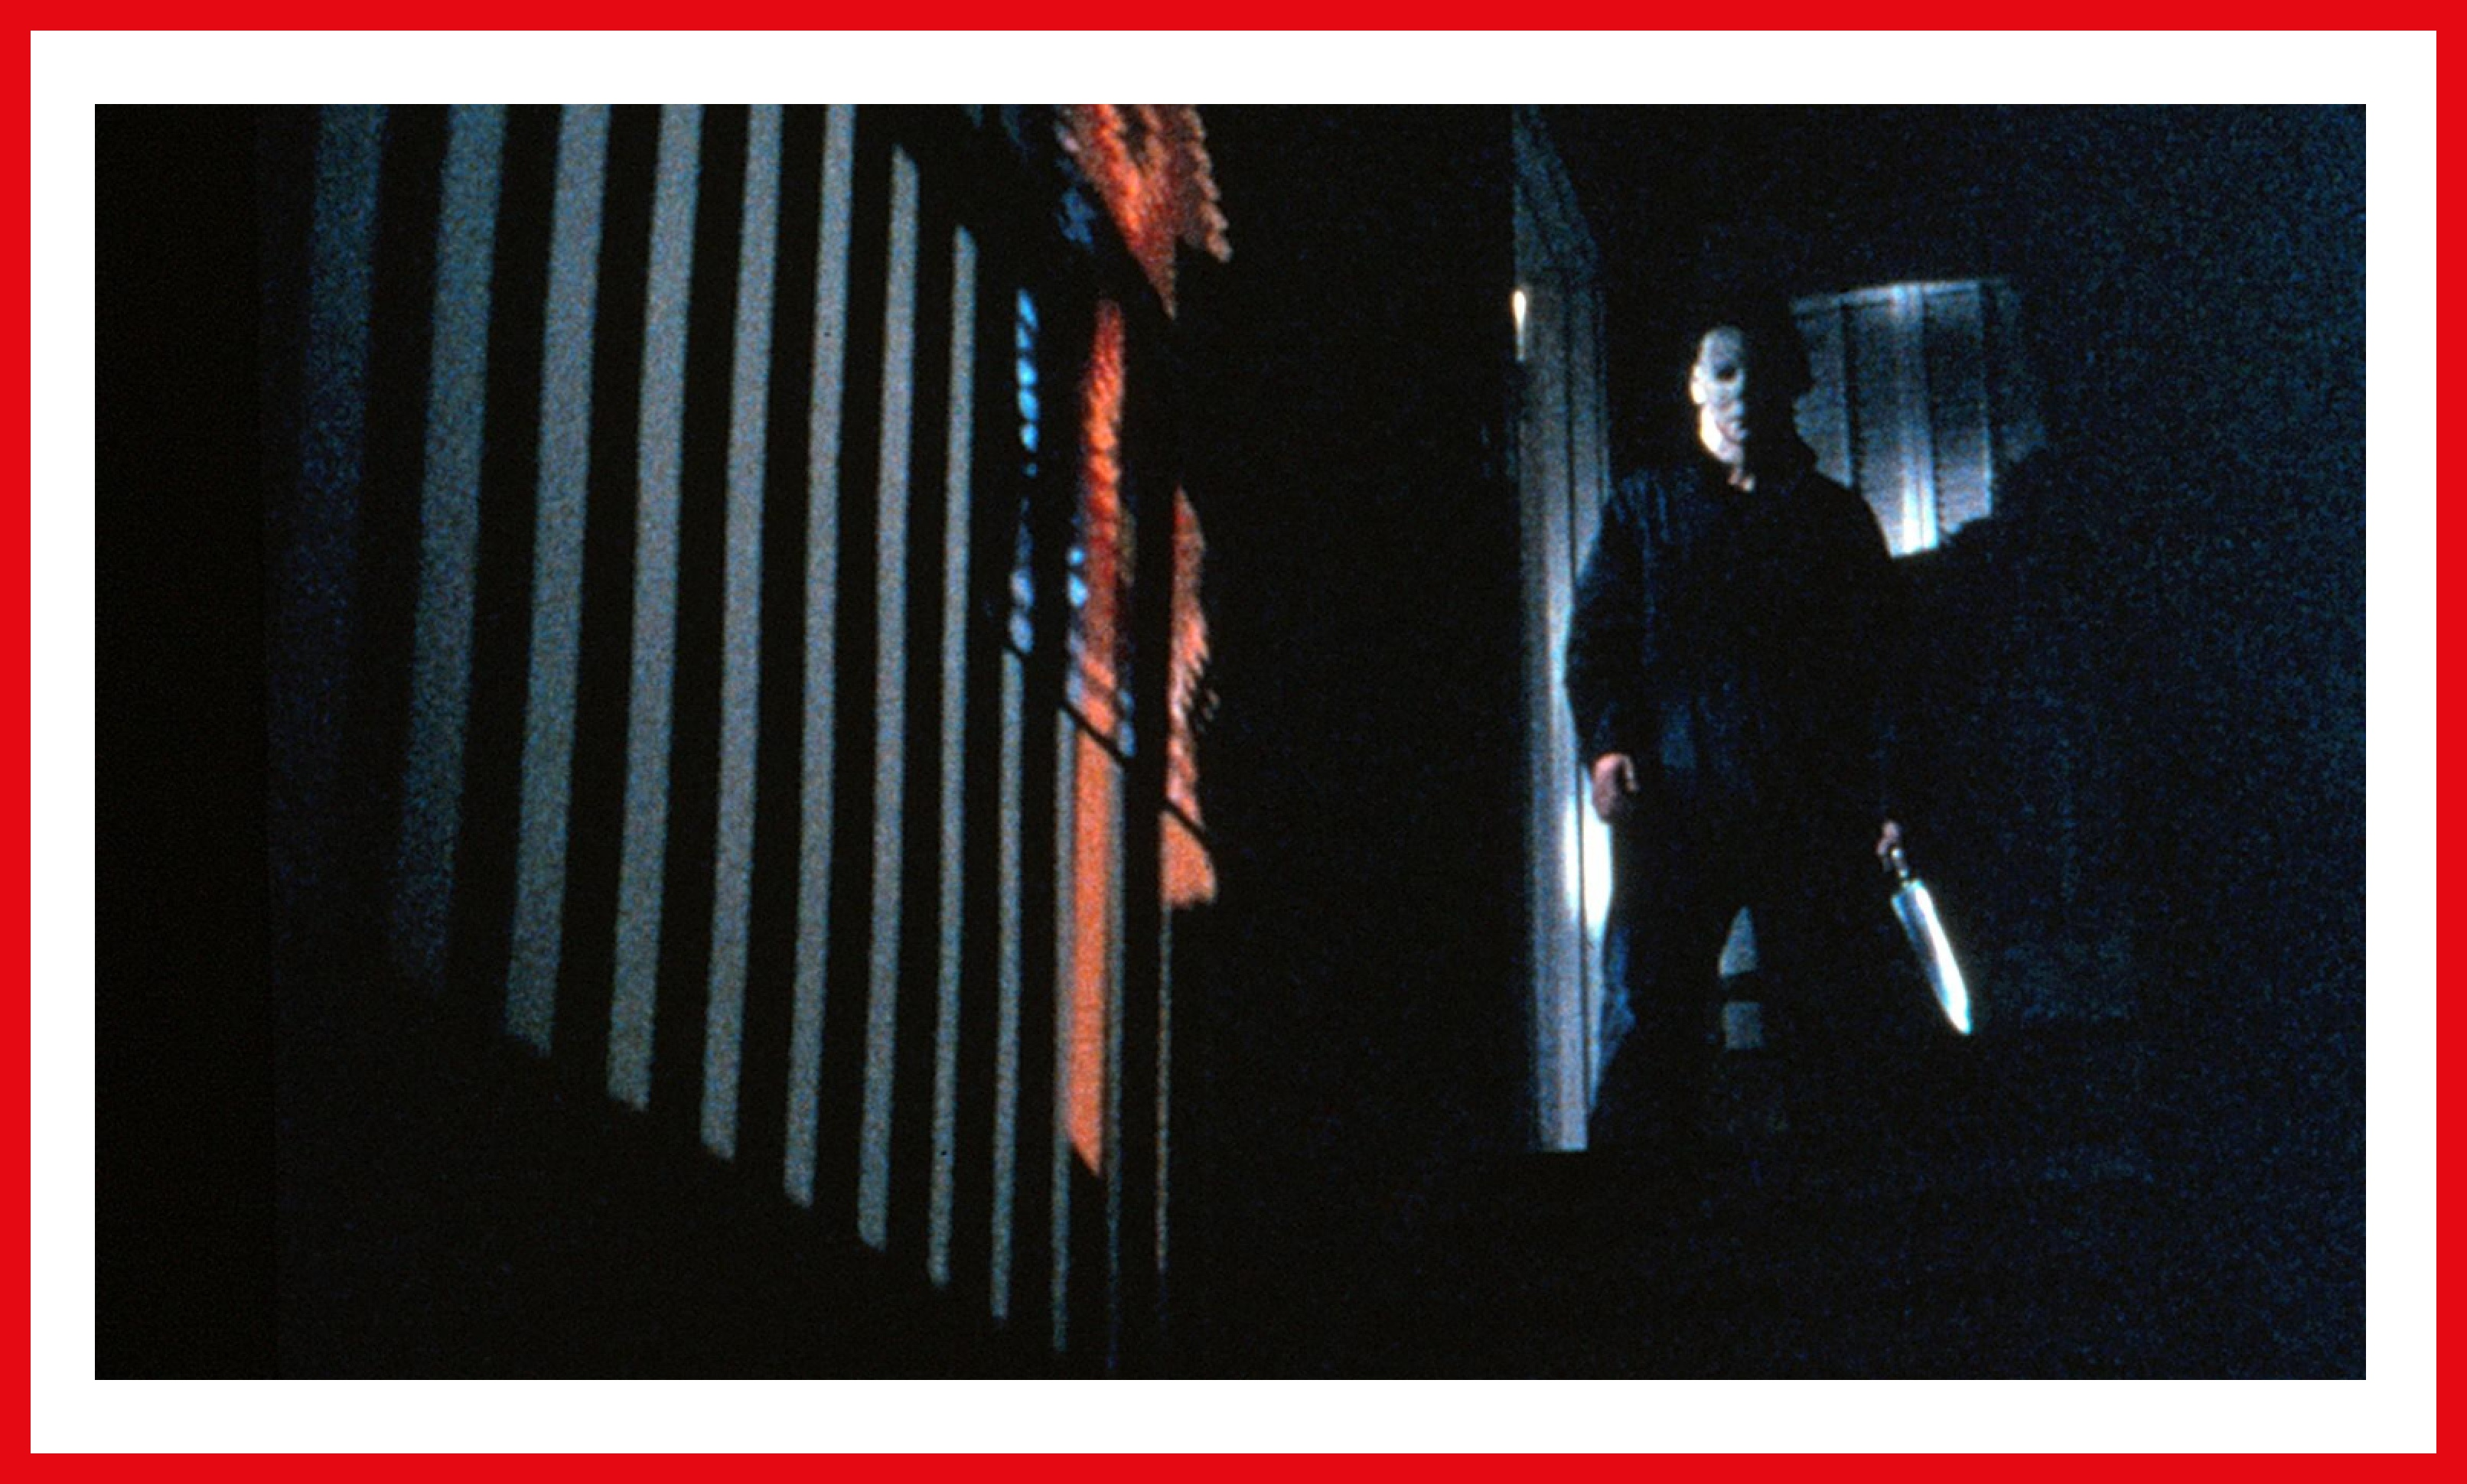 Castle as Michael Myers stands threatening in the dim, the blade of his knife shining.